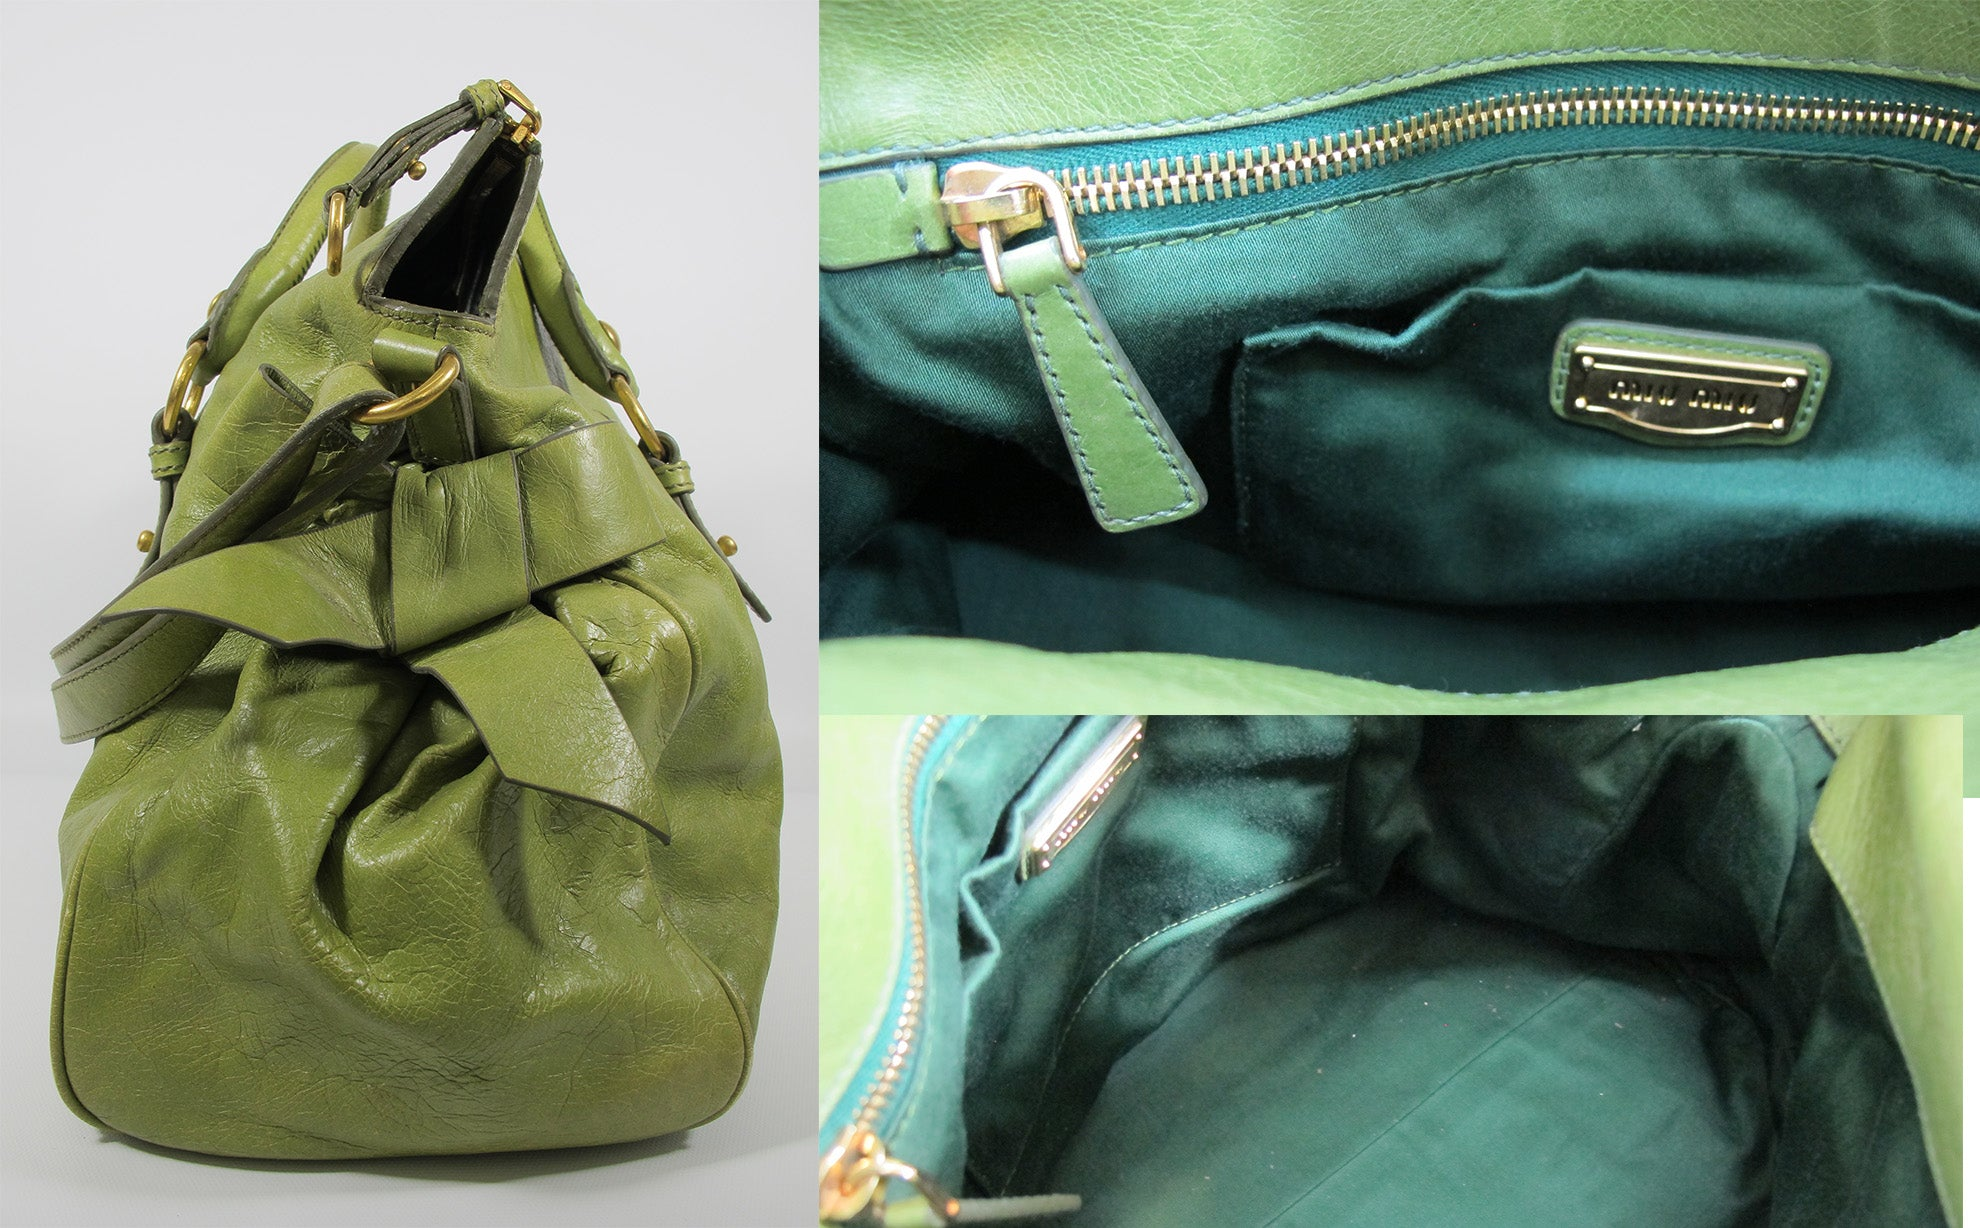 Miu Miu Limited Edition Green Bow Bag